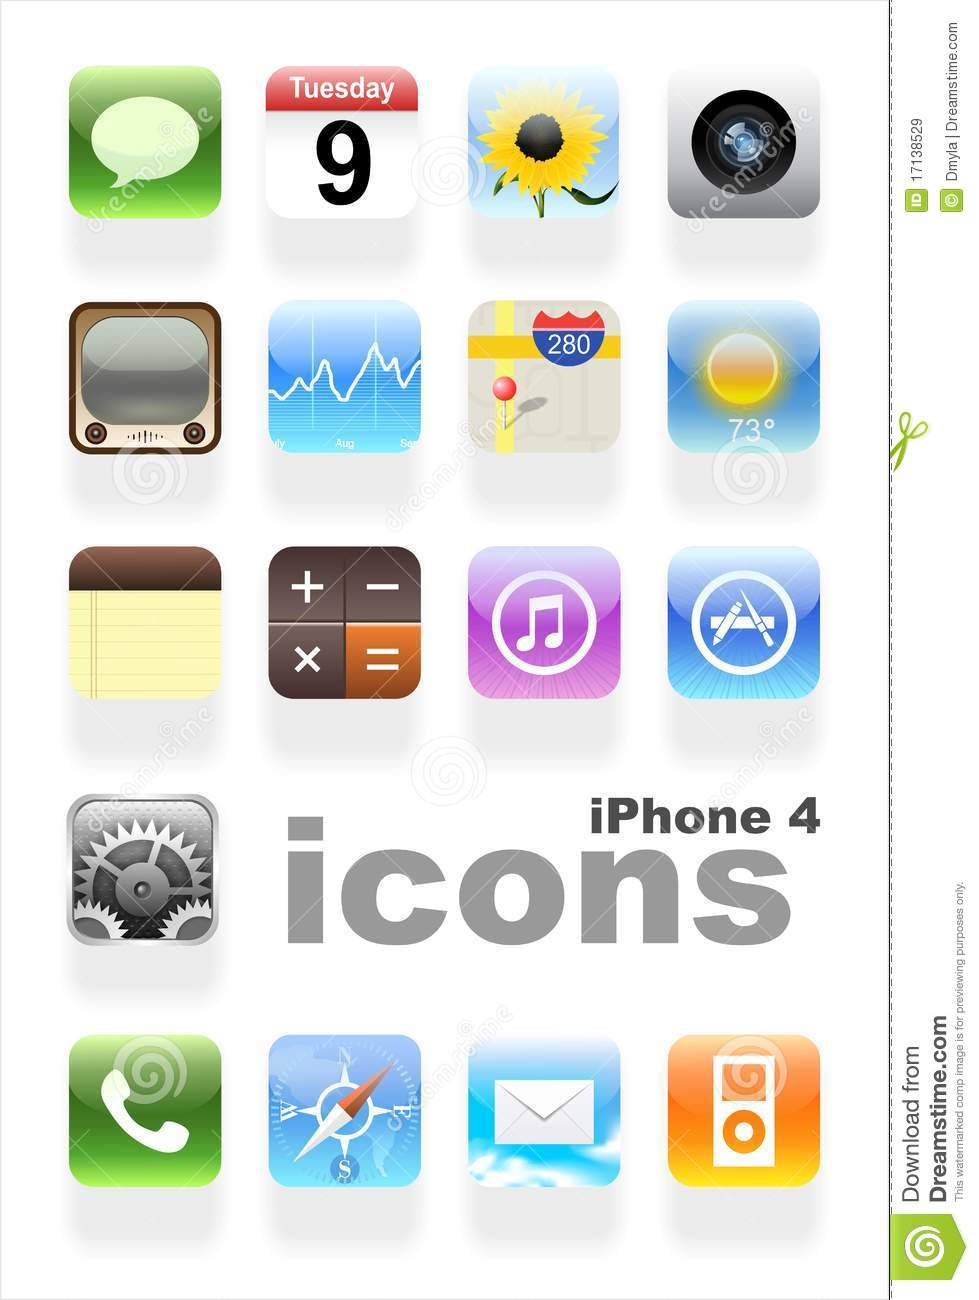 IPhone 4 Icons Editorial Stock Image - Image: 17138529